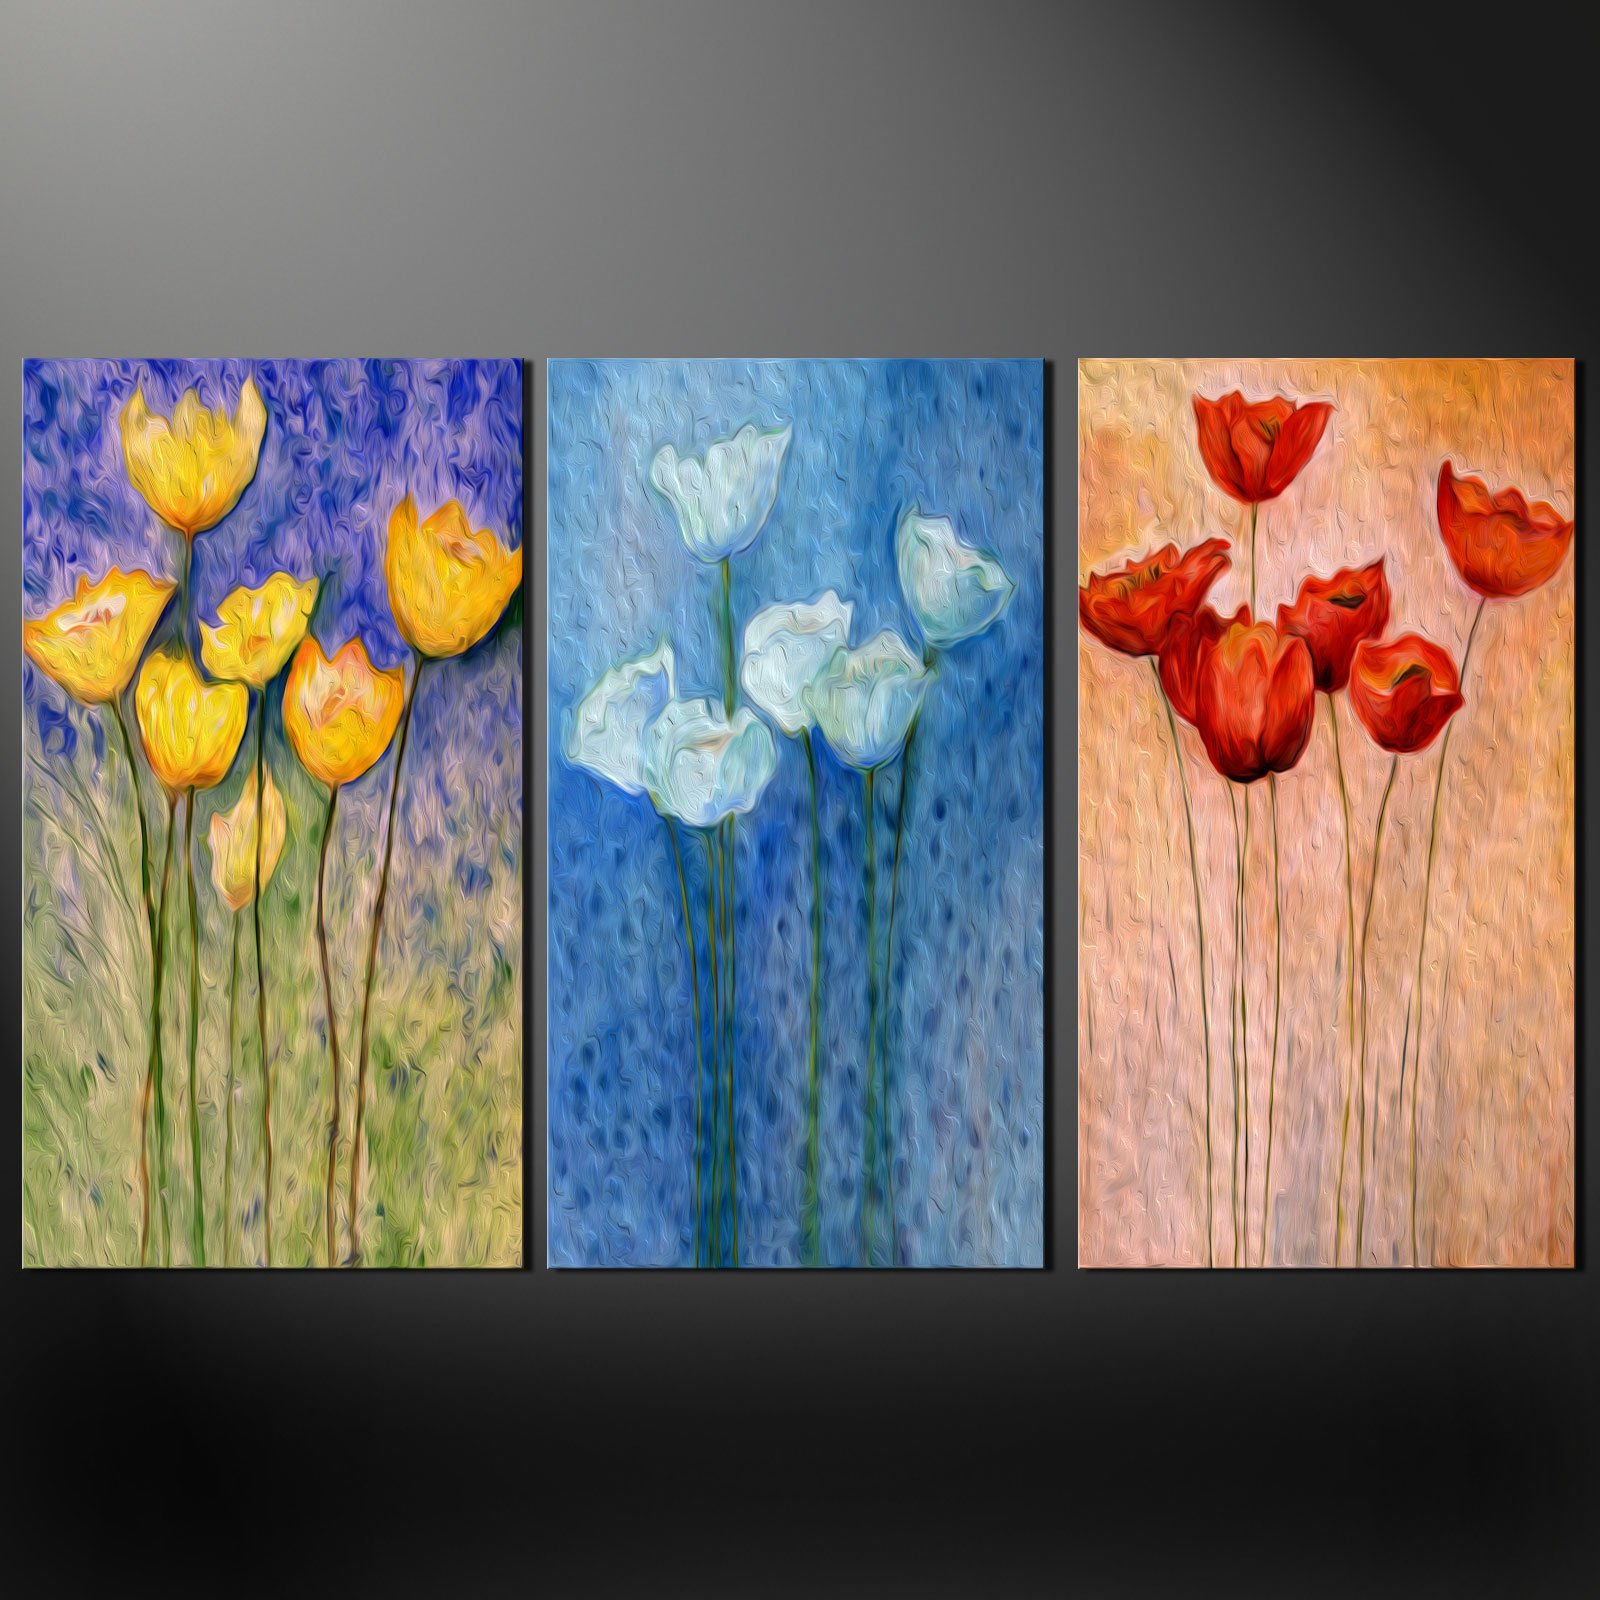 floral design poppies 3 panels split canvas wall art pictures prints free uk pp